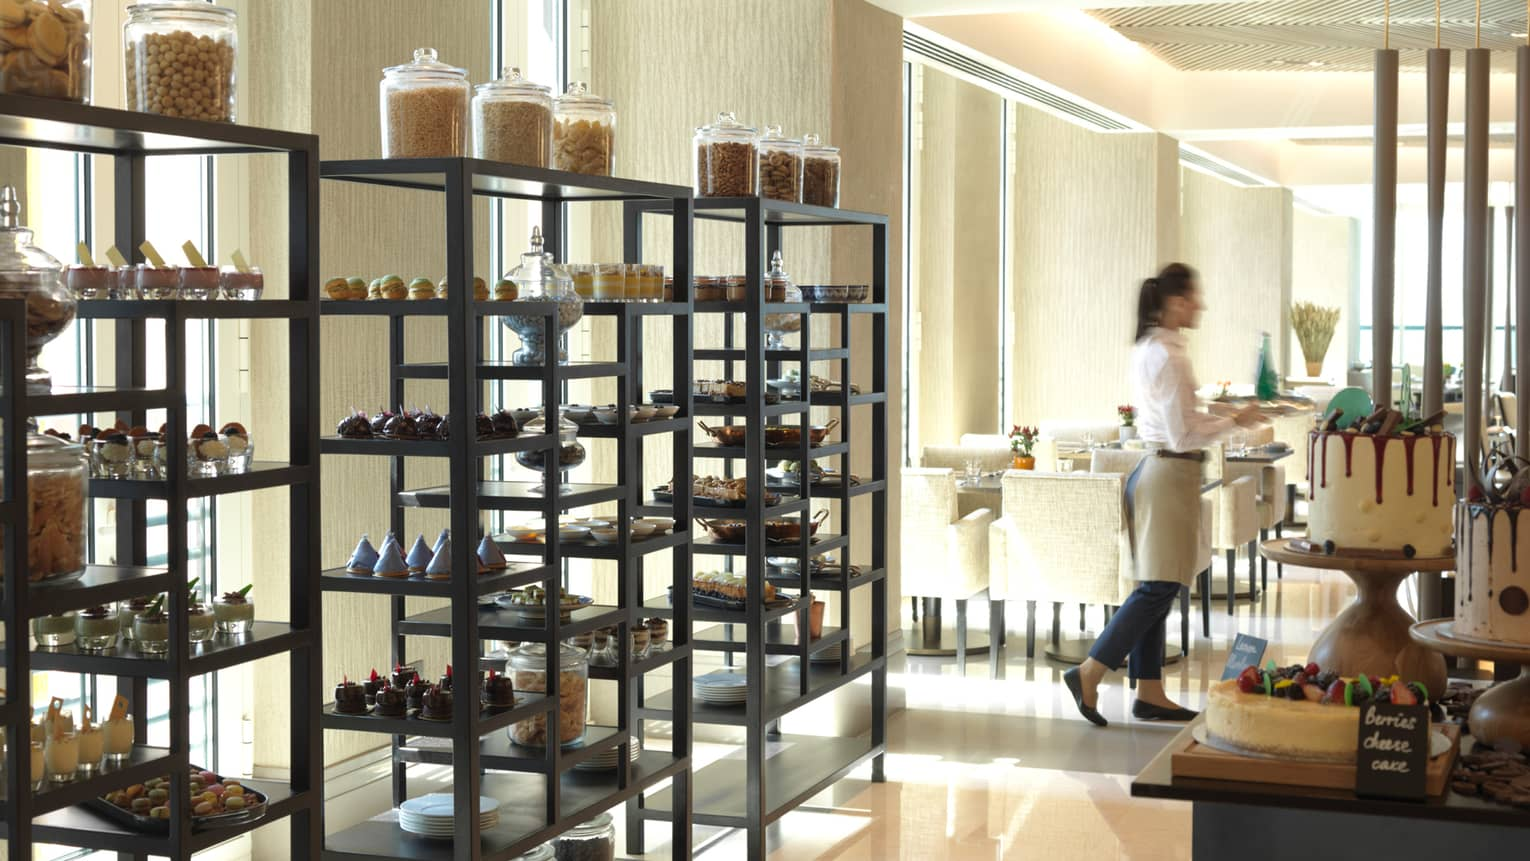 Three tall racks filled with fancy pastries and desserts in front of window, server carries tray to dining room